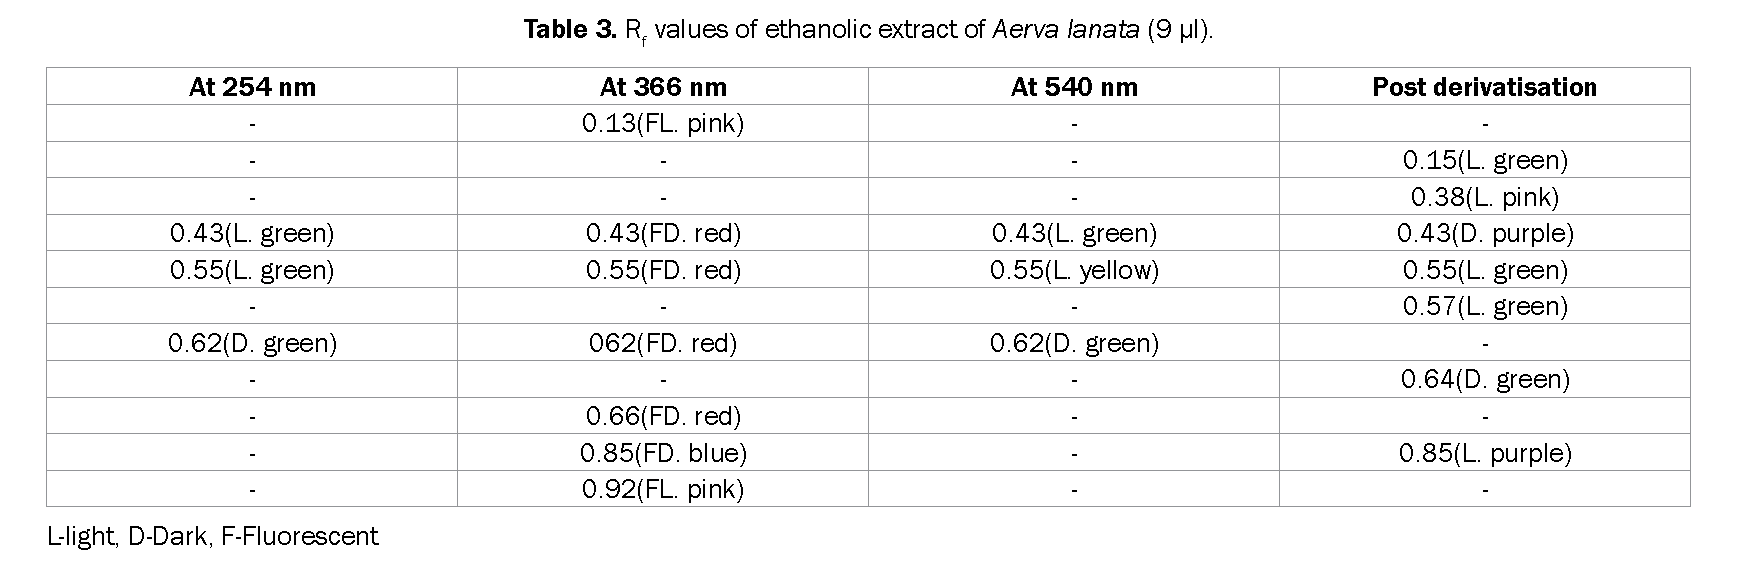 Pharmacognsoy-Phytochemistry-Rf-values-ethanolic-extract-Aerva-lanata